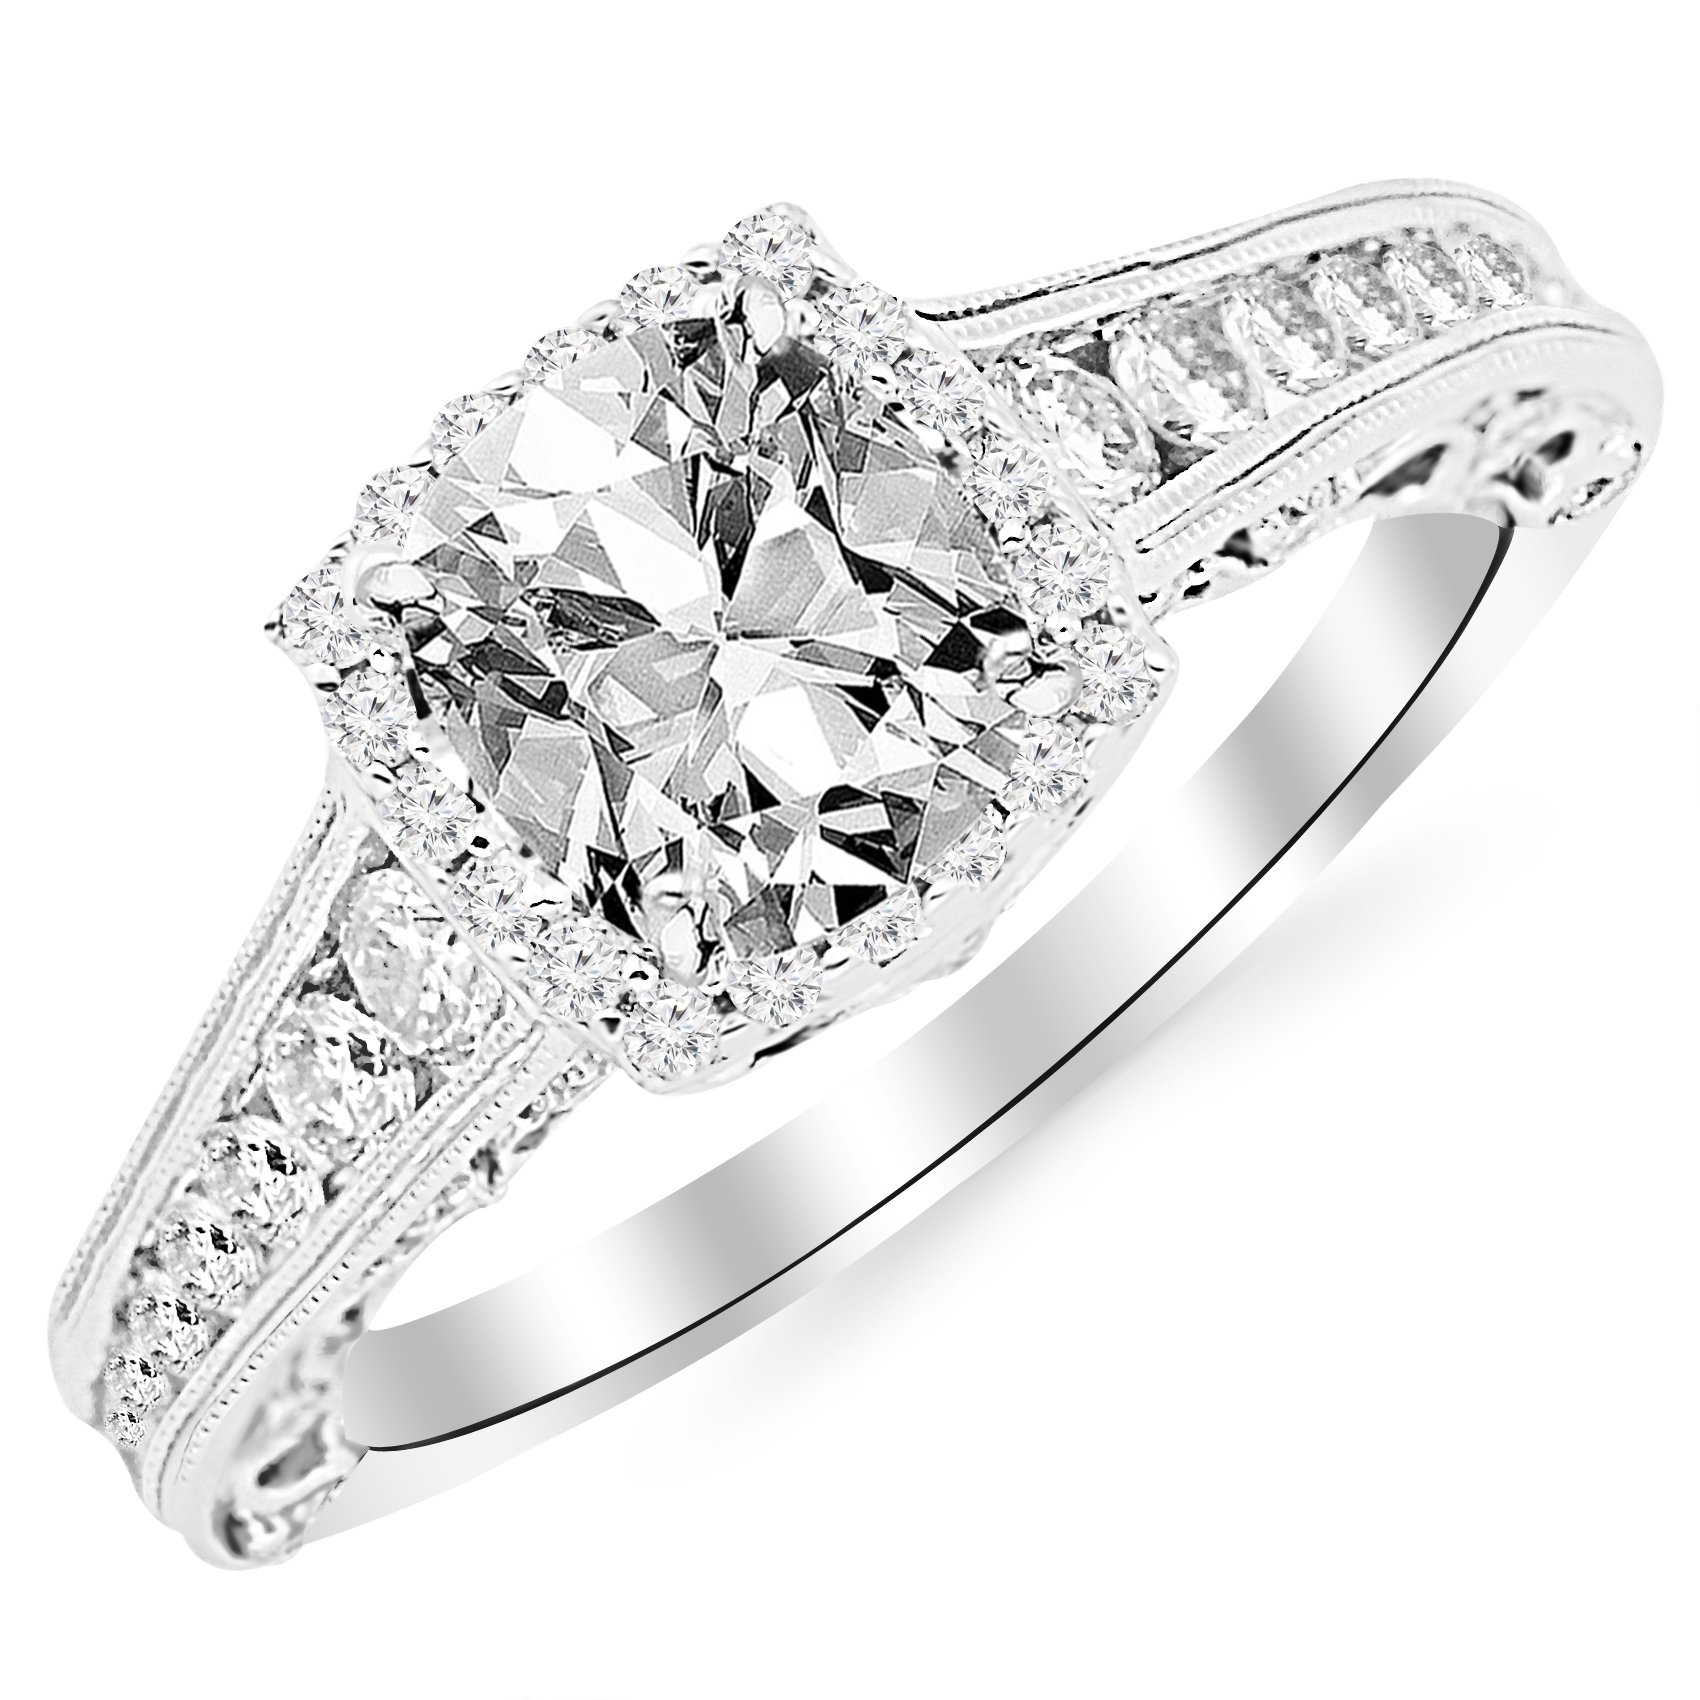 GIA Certified 1.45 Carat Cushion-Cut 14K White Gold Vintage Sidestone Diamond Engagement Ring with Milagrain Half Bezel Baguette with a 0.70 Carat, D-E Color, VVS1-VVS2 Clarity Center Stone by Houston Diamond District